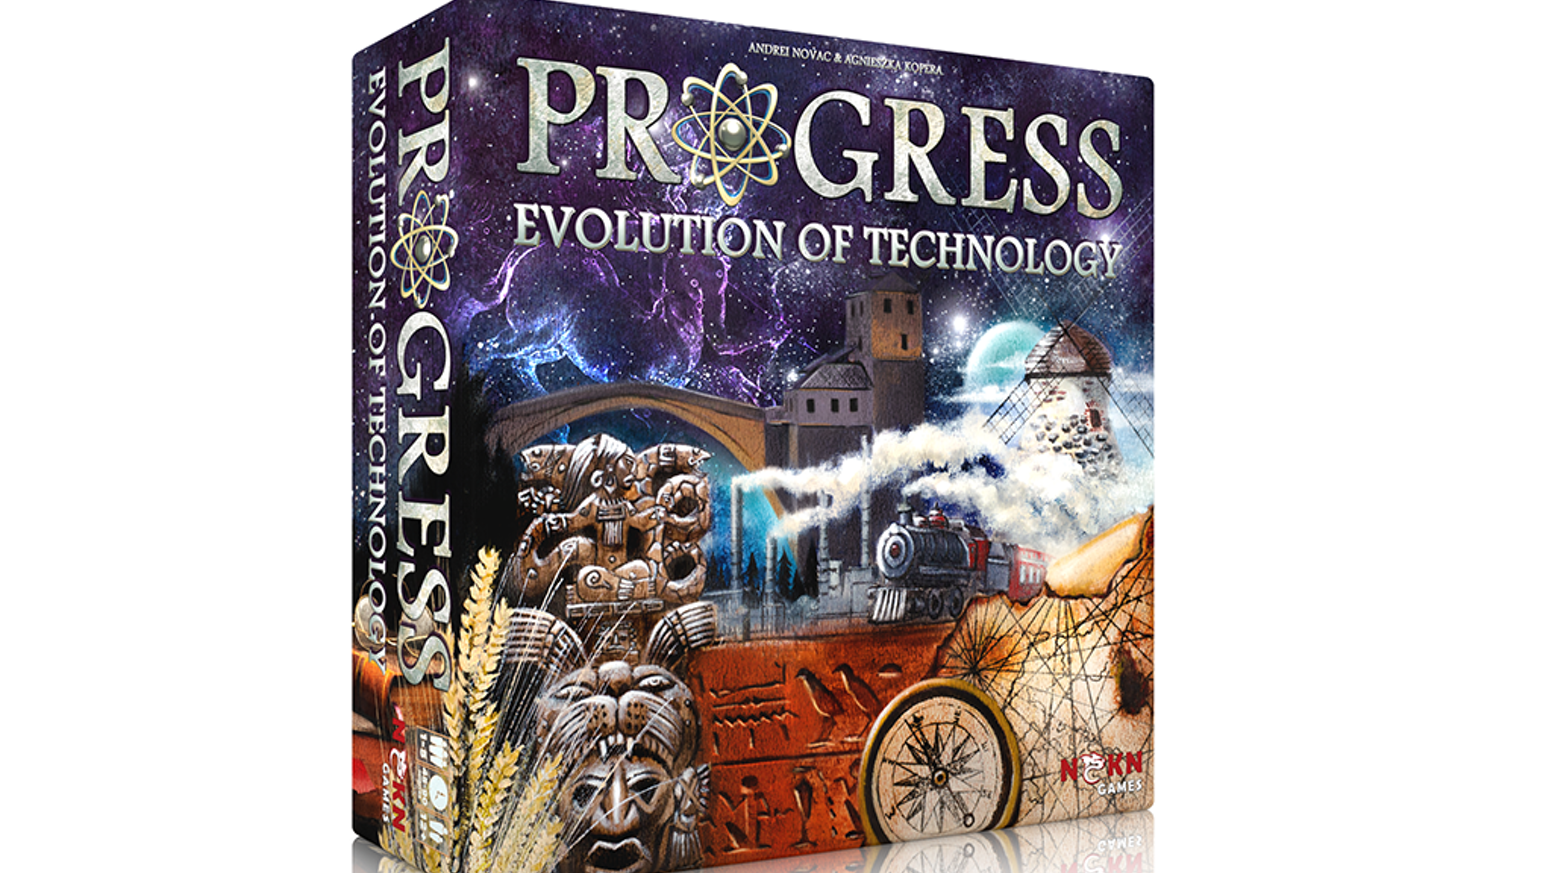 Research technologies to build a civilization and help your society flourish. Become part of the Progress!